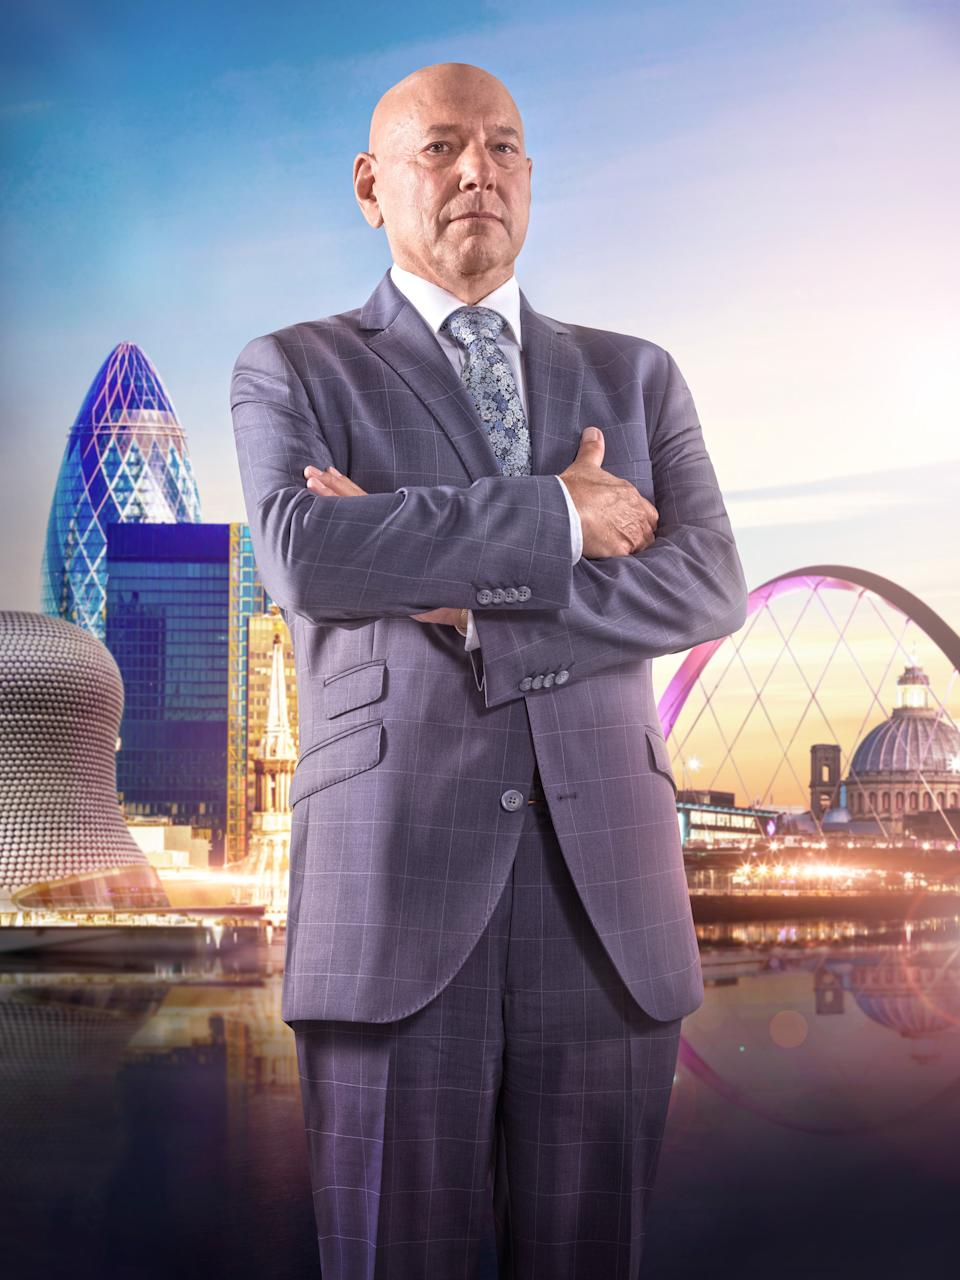 Claude Littner will be absent from the next series of The Apprentice. (BBC/Boundless Taylor Herring/Jim Marks)